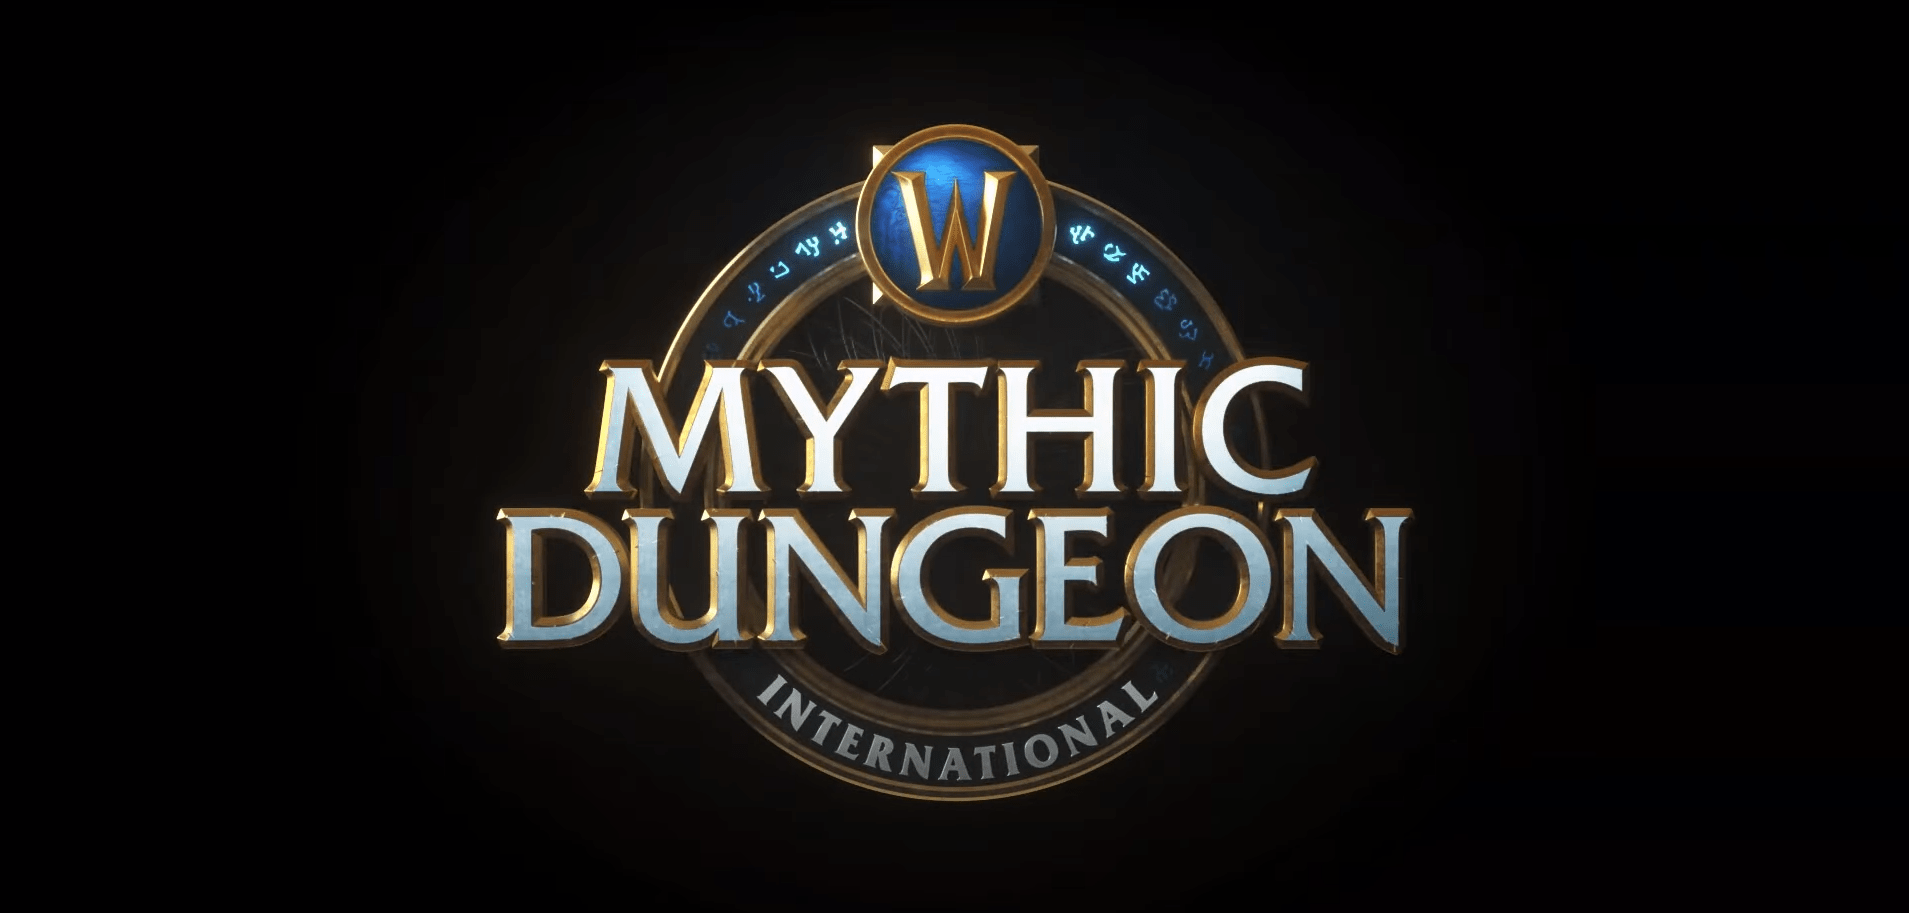 World Of Warcraft's Mythic Dungeon International EU & Asia Cup 3 Continues, With Six Teams Still Vying For Victory!